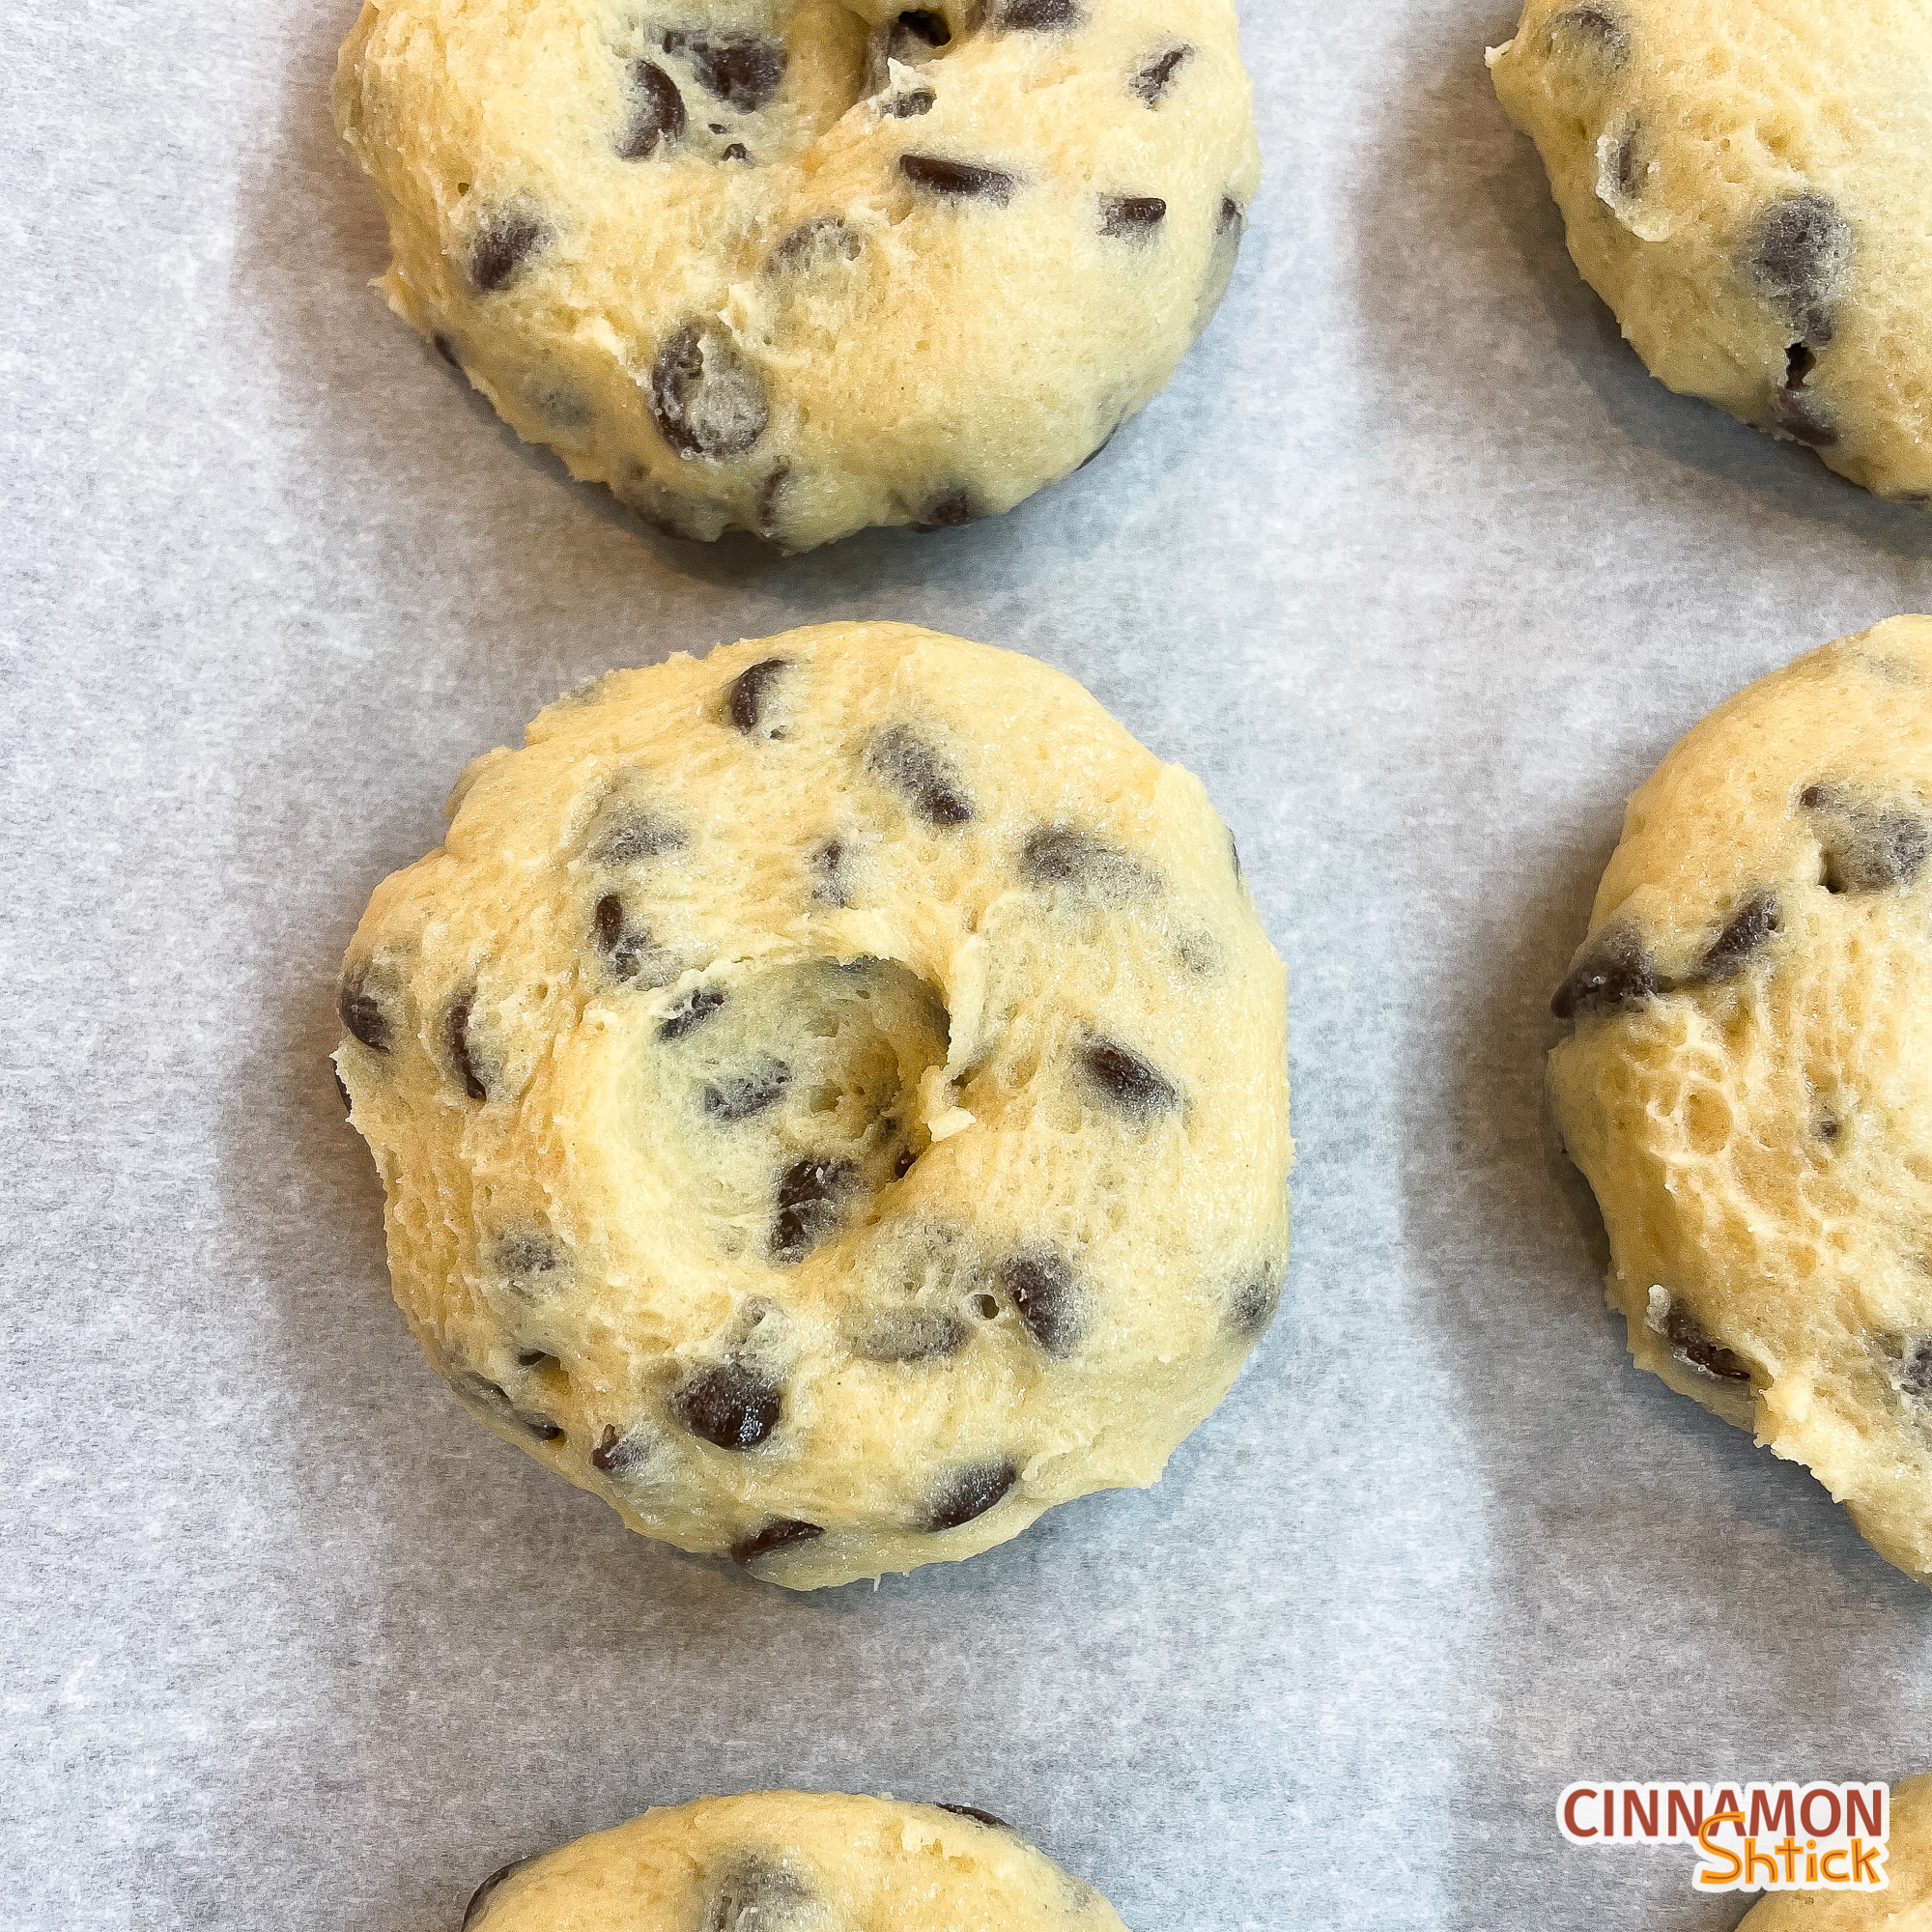 Cookie dough pucks lined up on parchment covered baking sheet